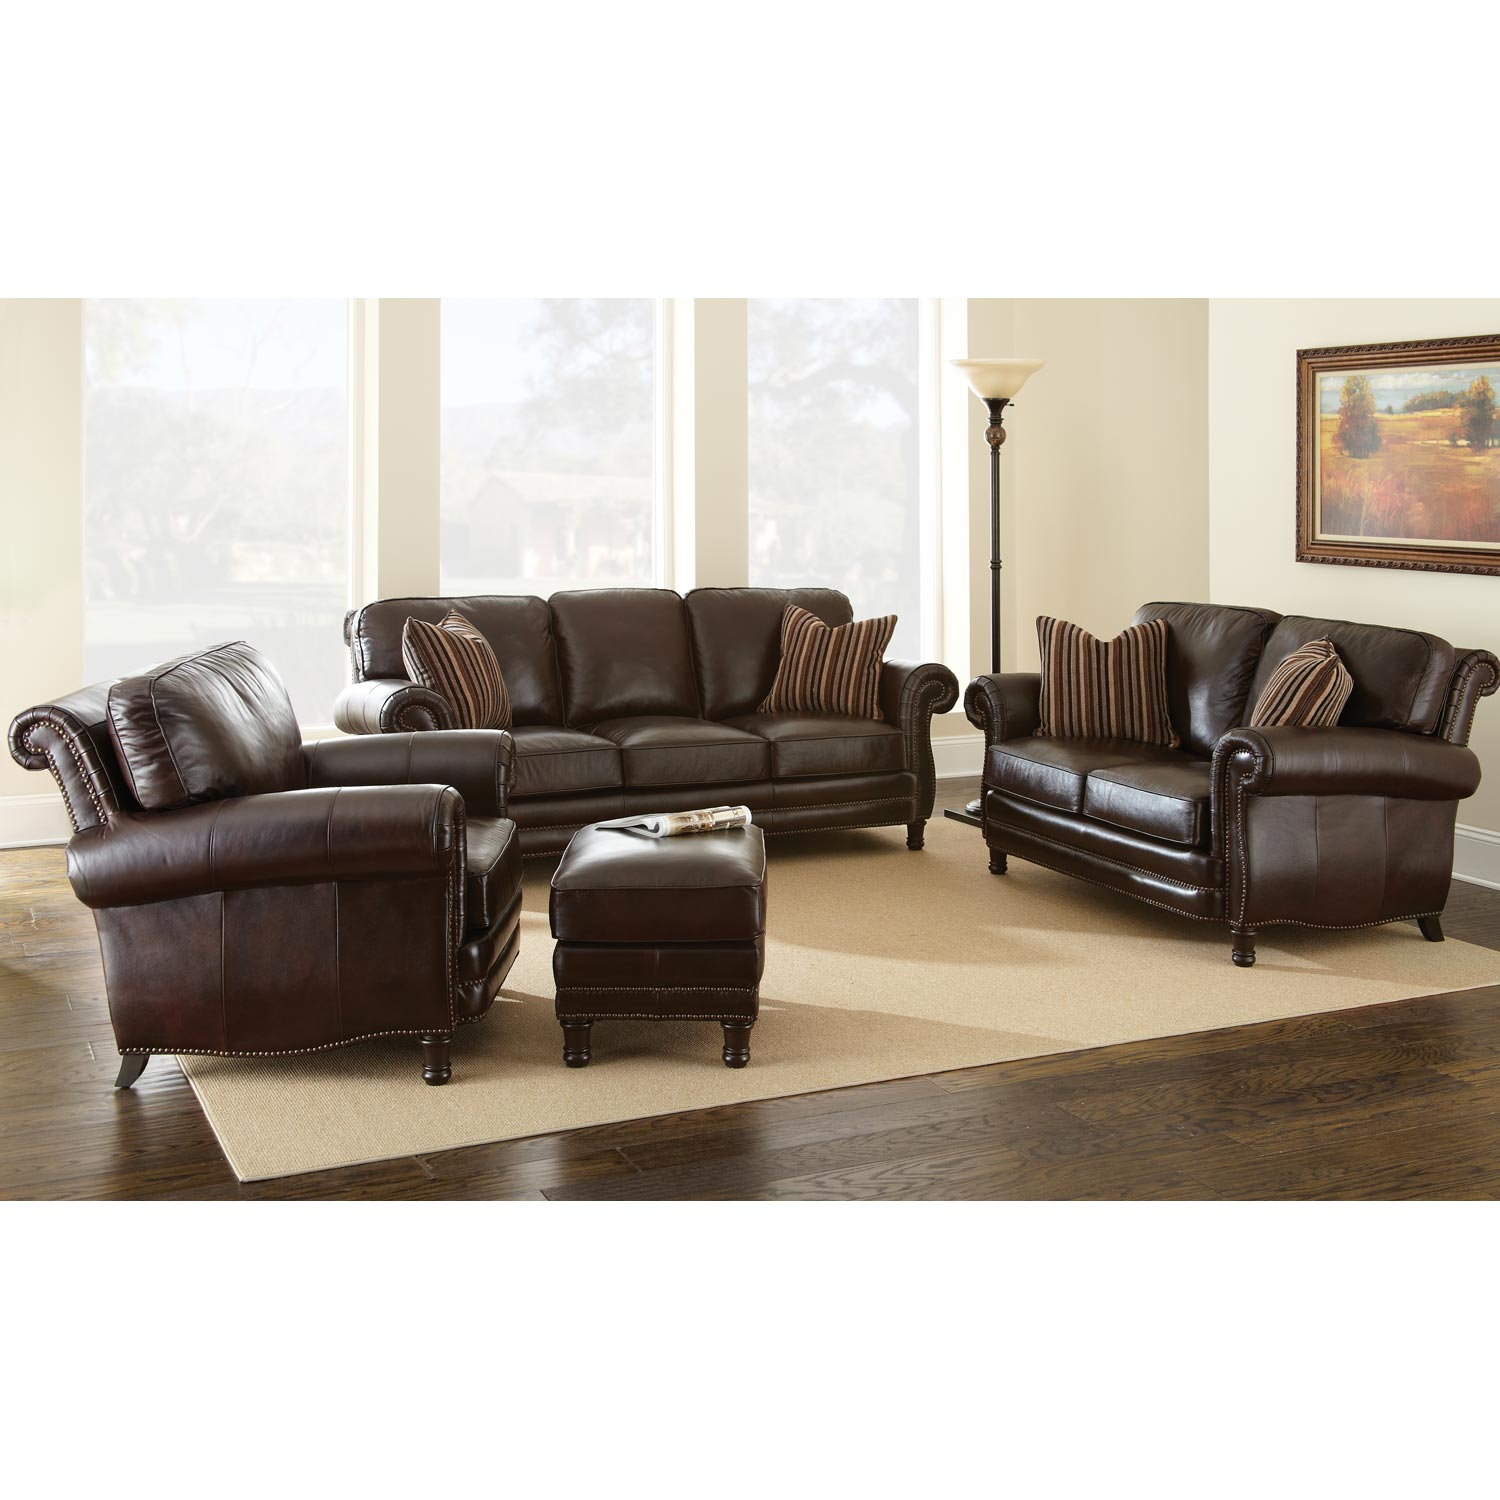 Attractive Chateau 3 Piece Leather Sofa Set   Antique Chocolate Brown   SSC CH860 3PC  ...